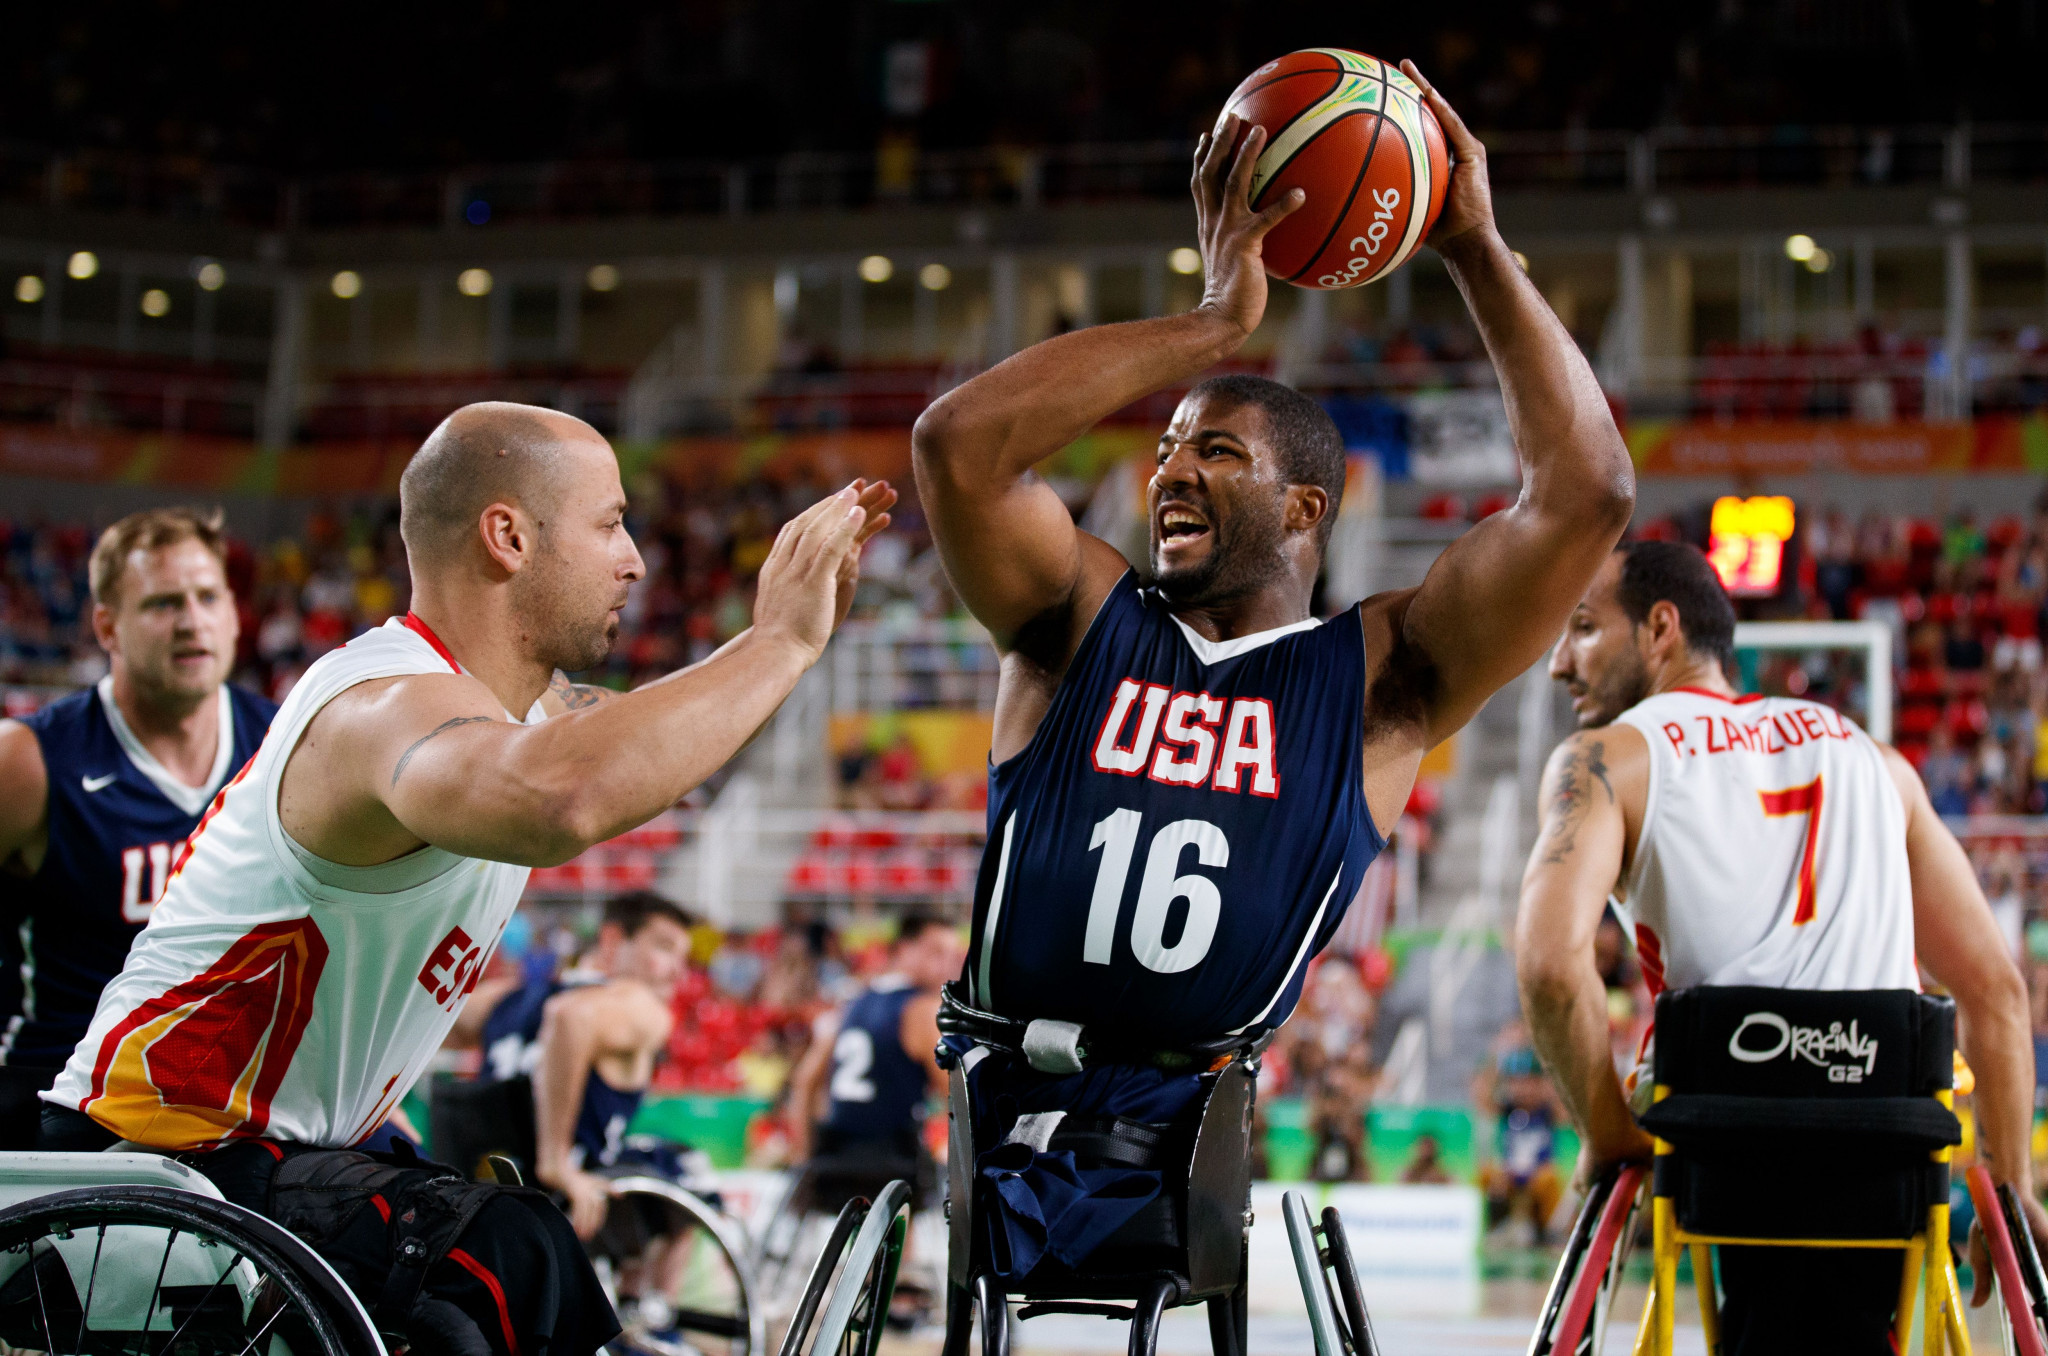 The IPC has threatened to remove wheelchair basketball from the Tokyo 2020 and Paris 2024 Paralympic Games ©Getty Images